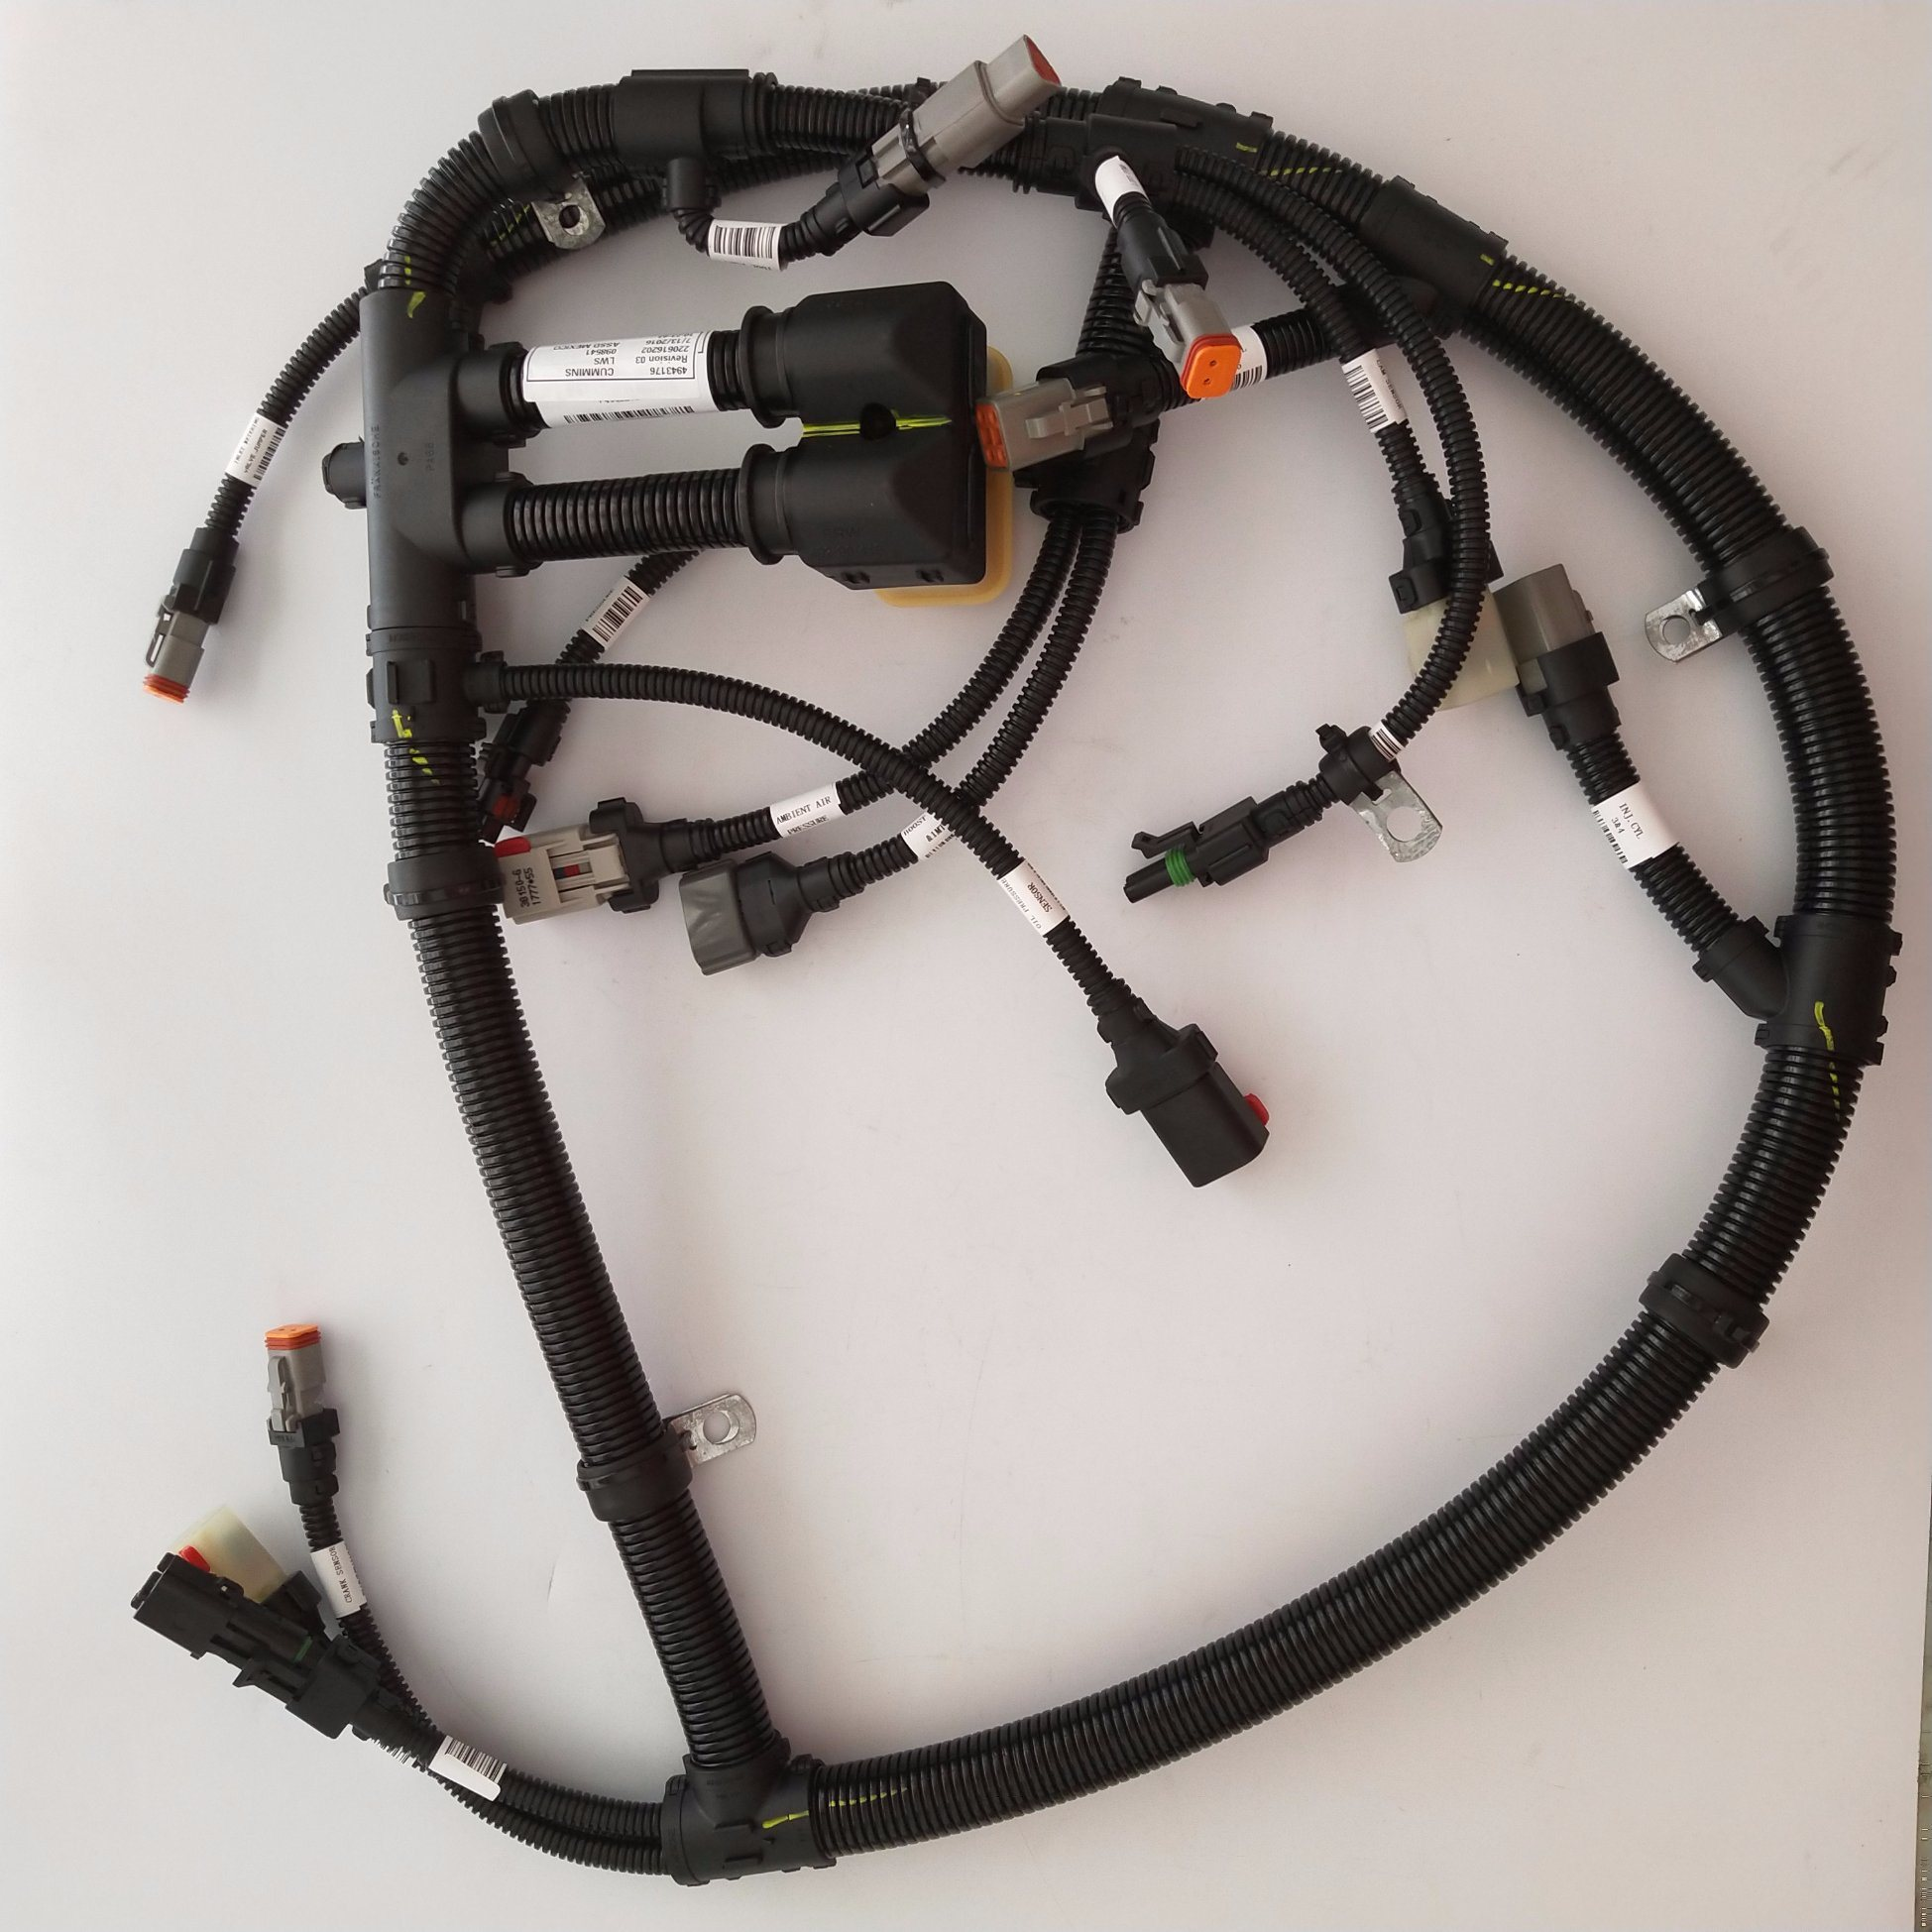 China Cummins Diesel Engine Isf Wiring Harness 4943176 Photos Composite